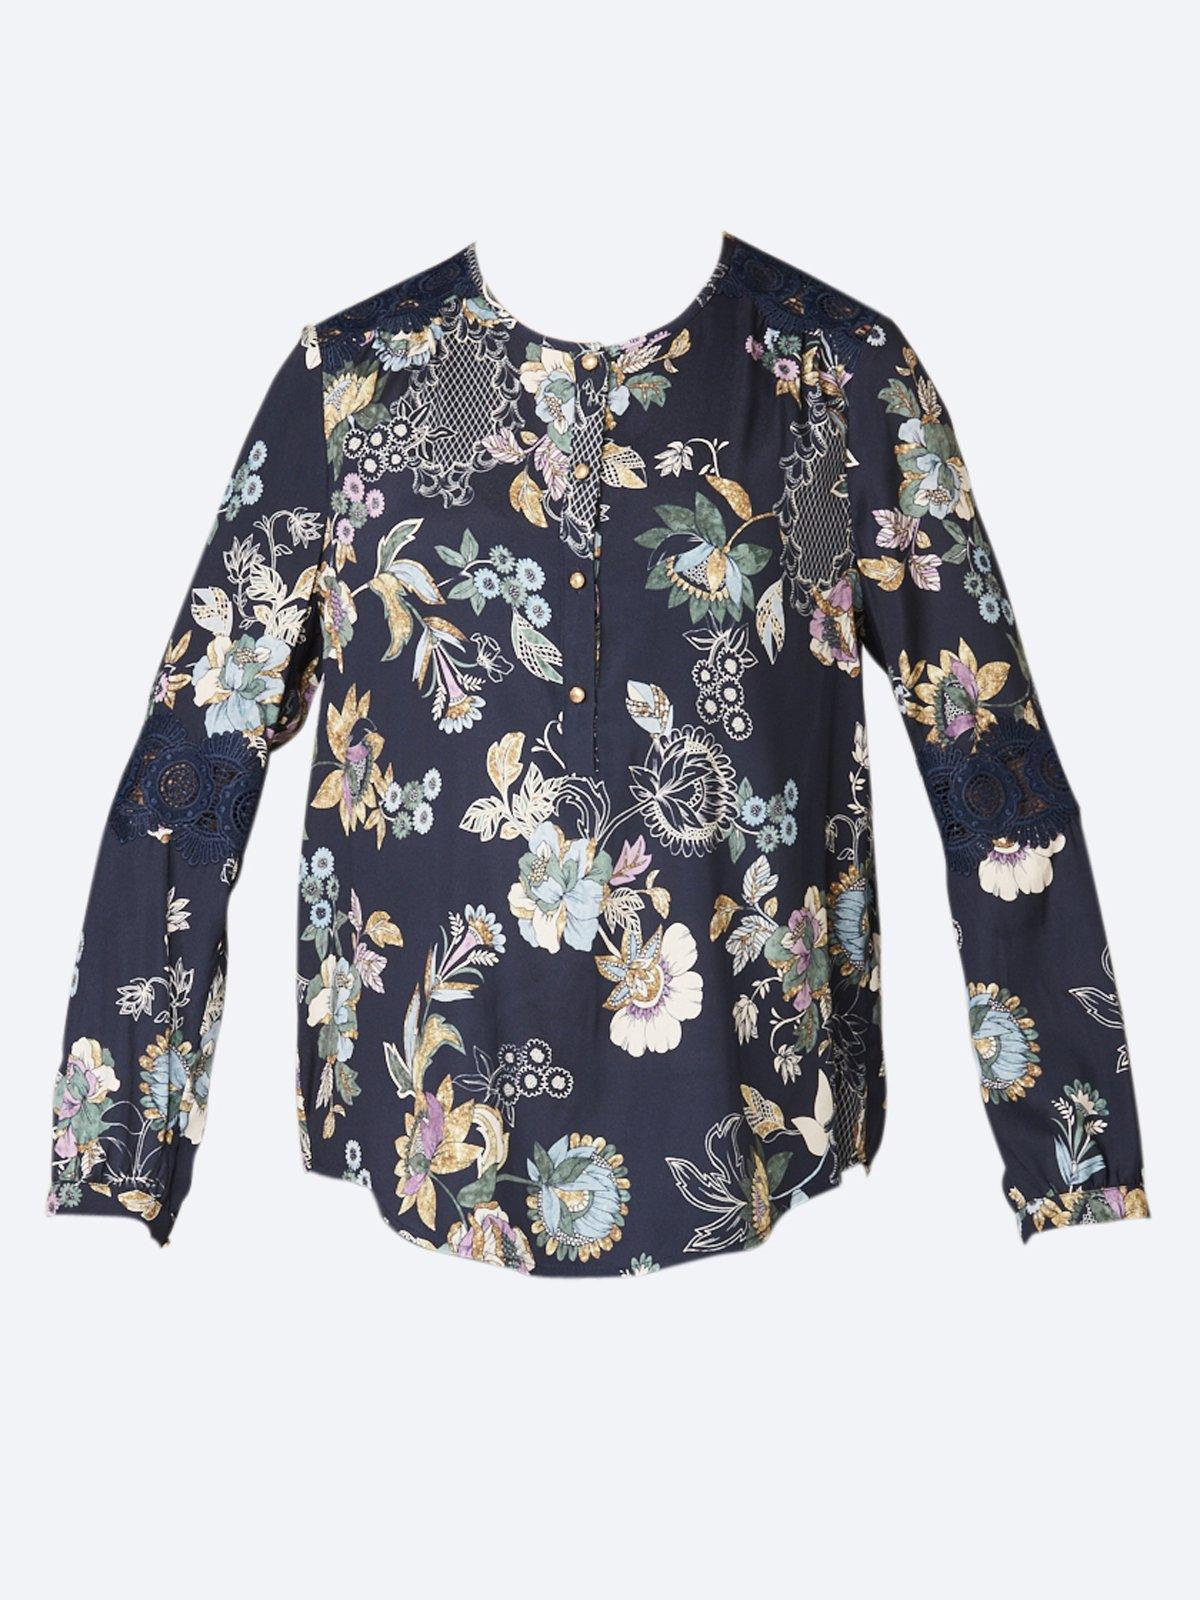 LOOBIE'S STORY FLOWER BOMB TOP